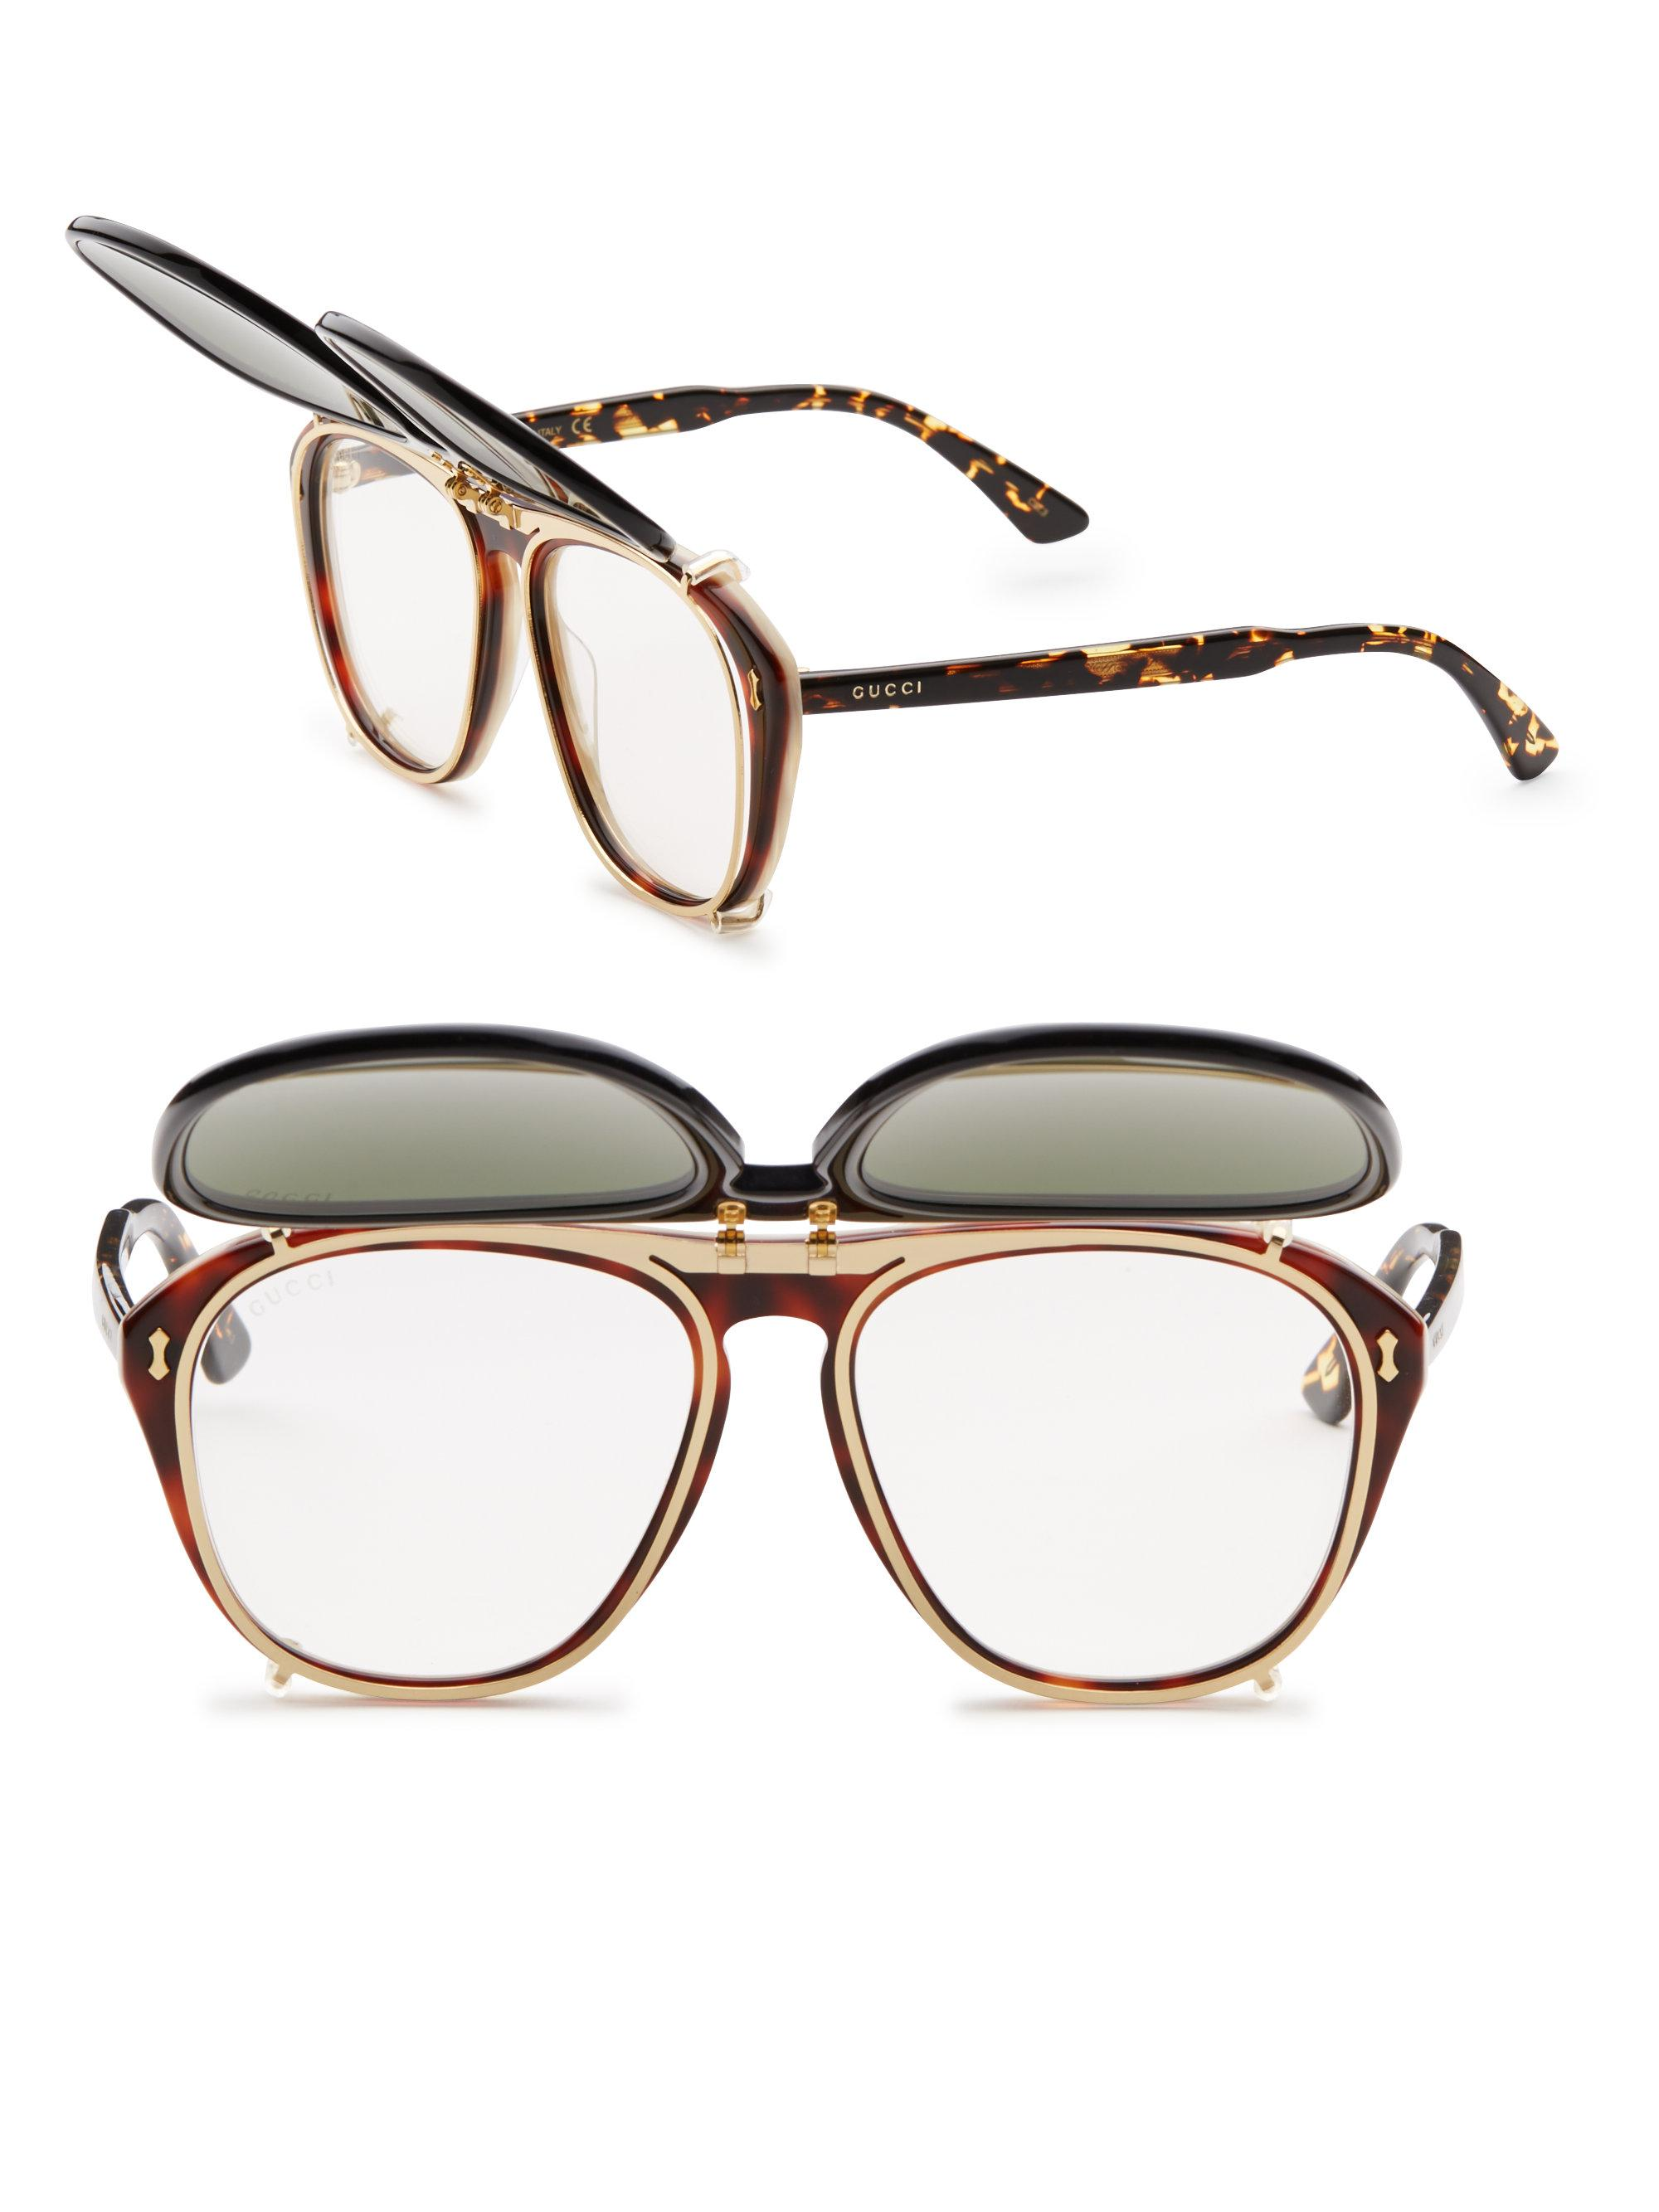 5cd3015fbe1 Lyst - Gucci 56mm Clip-on Frame Sunglasses for Men